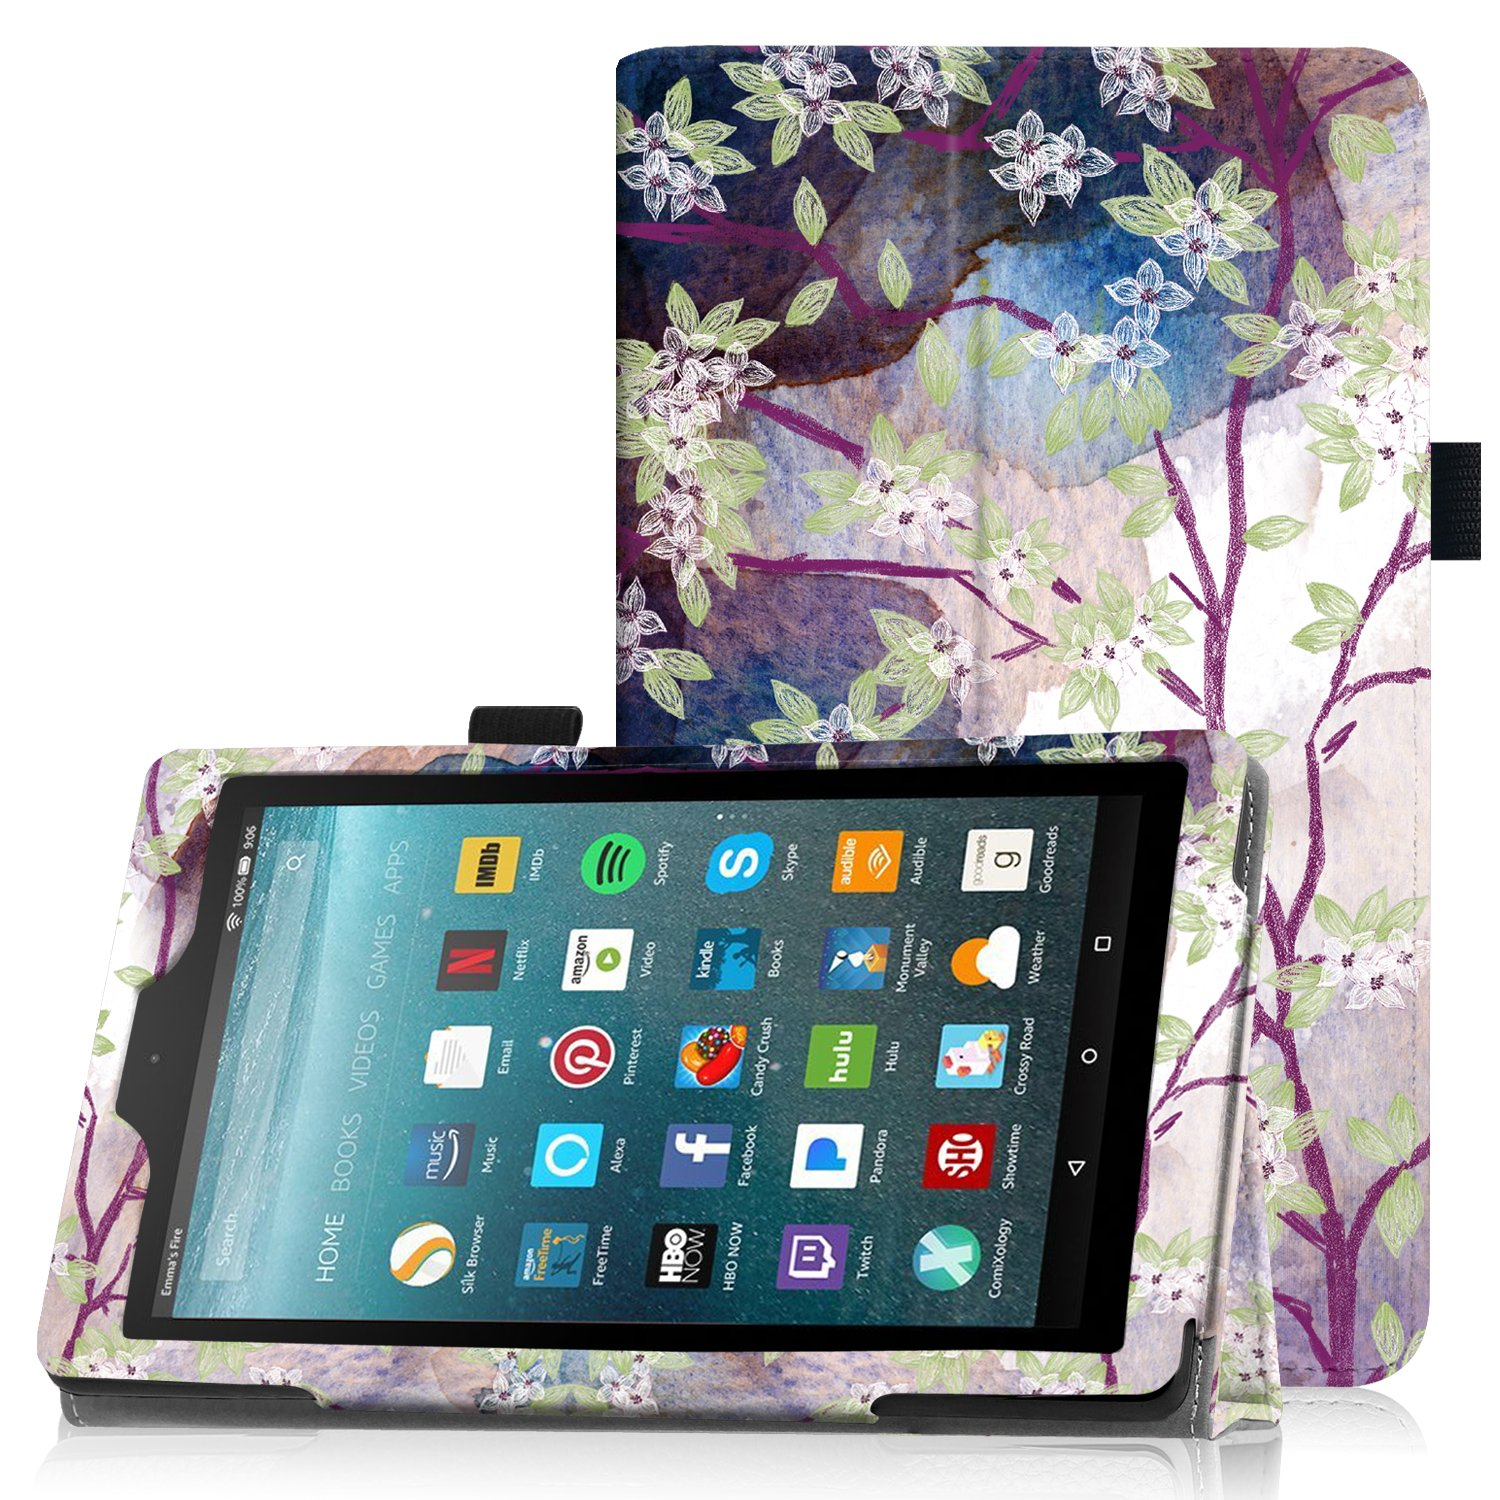 Famavala Folio Case Cover For 7-Inch Fire 7 Tablet [5th Generation 2015/7th Generation 2017] (LoveTree)